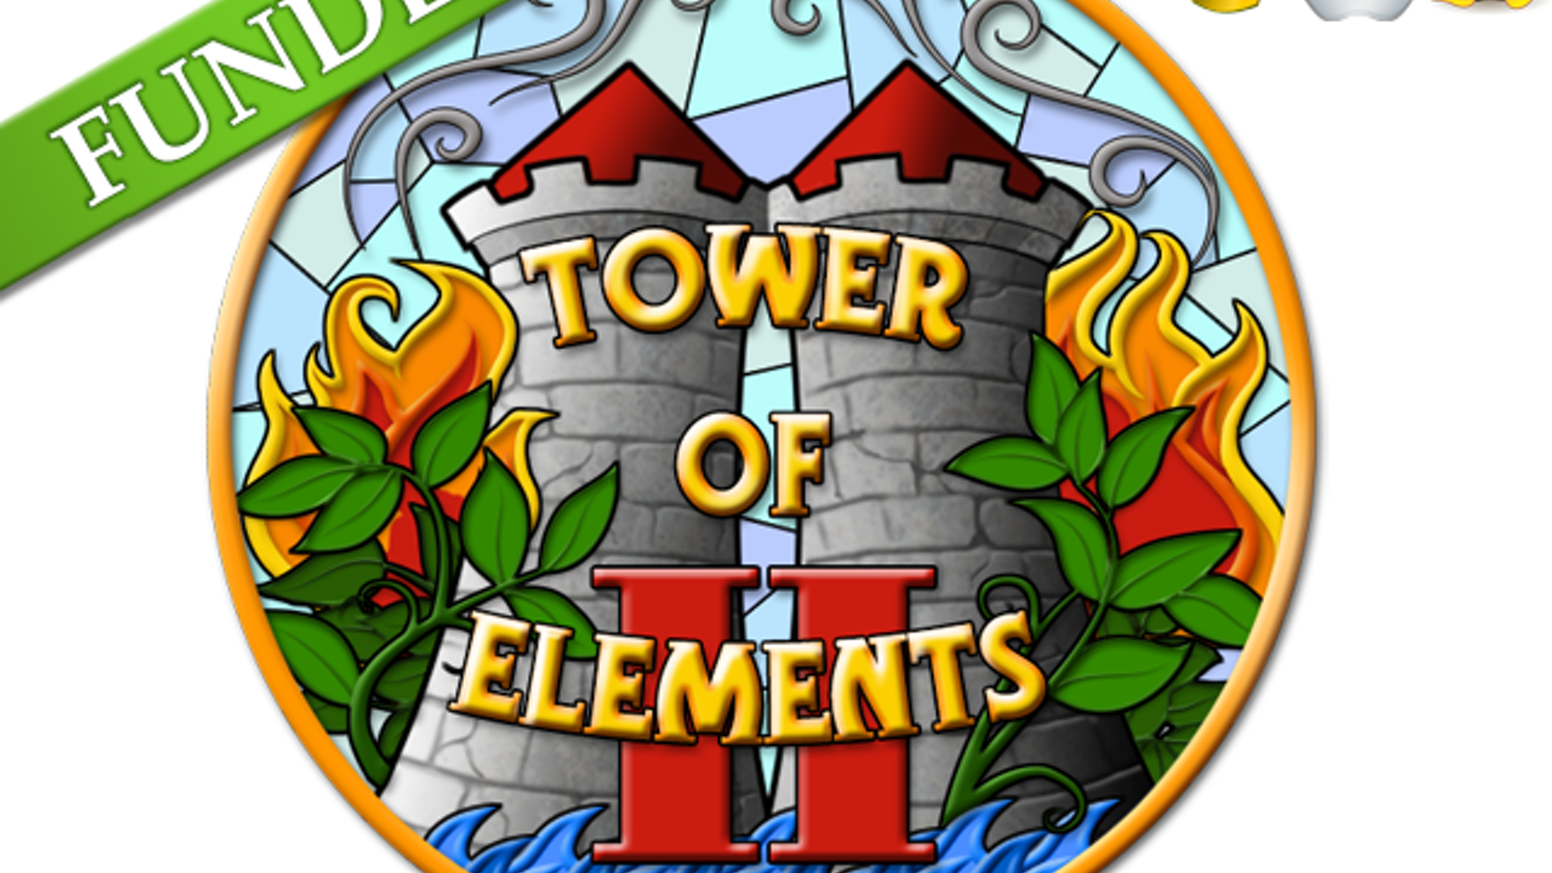 tower of elements 2 for pc mac and linux by frogdice community